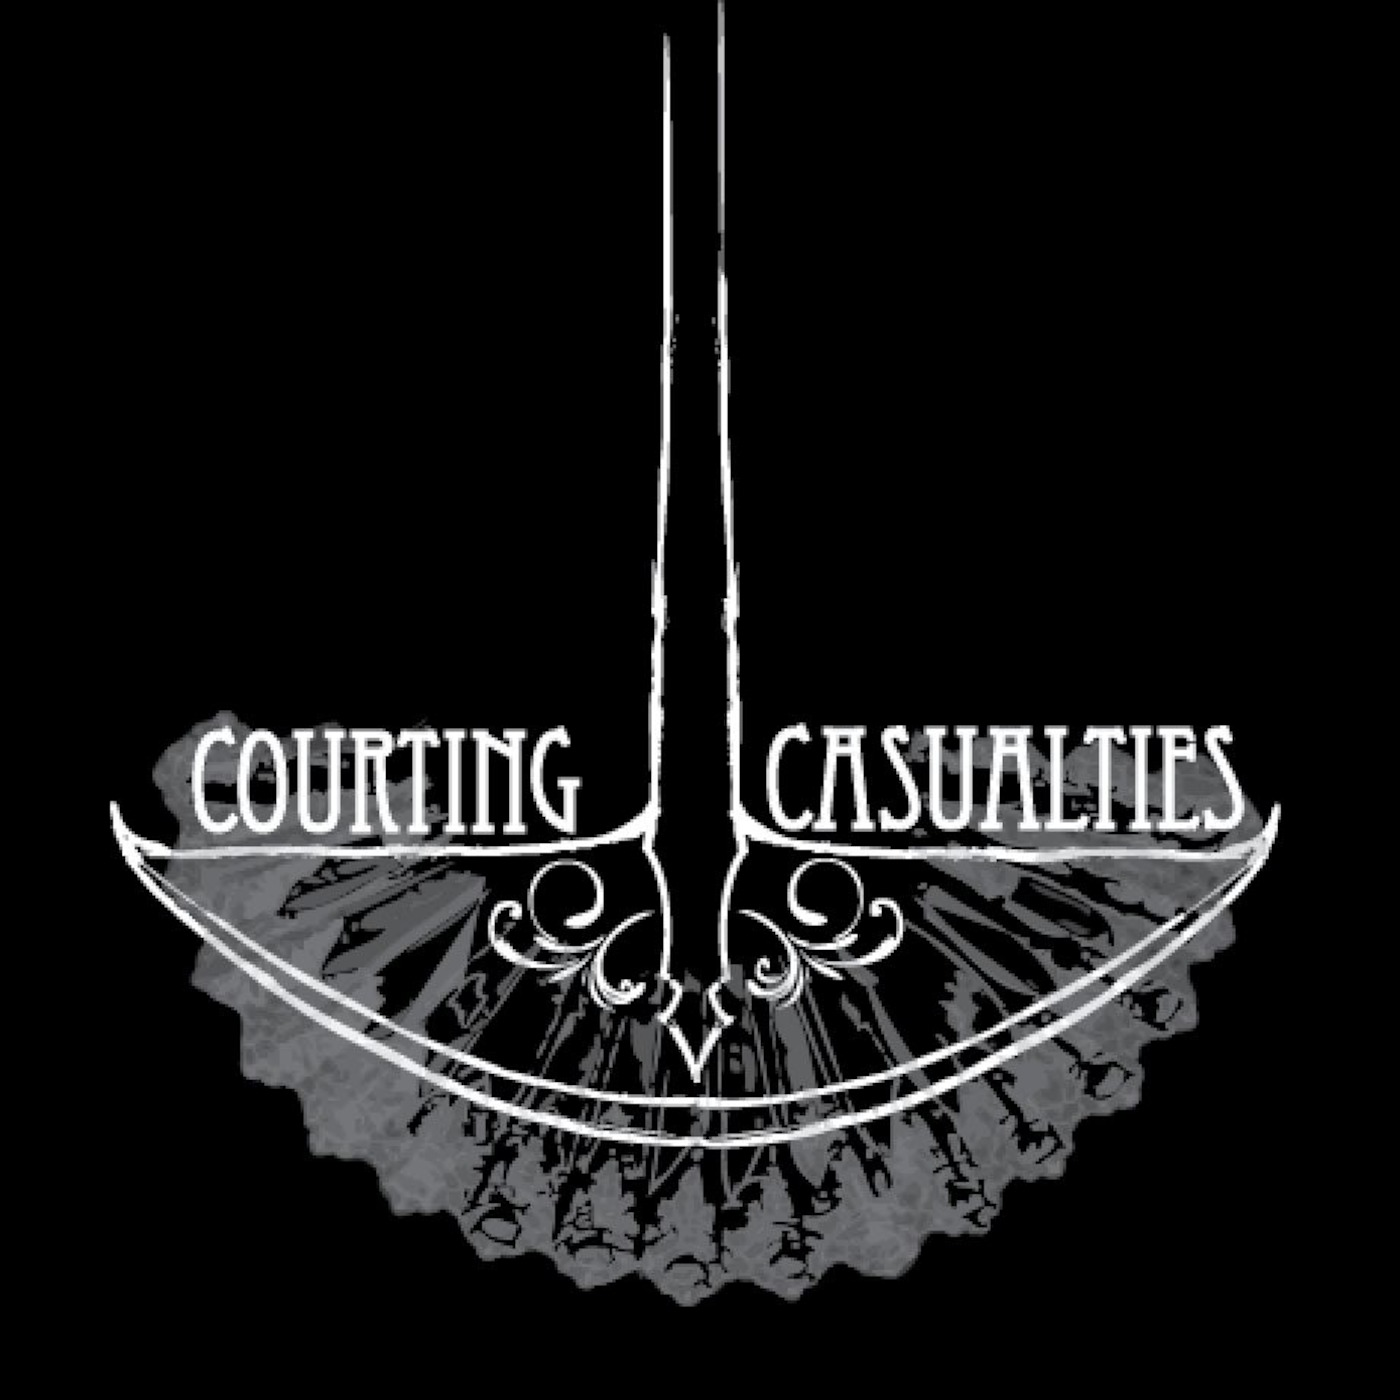 Courting Casualties